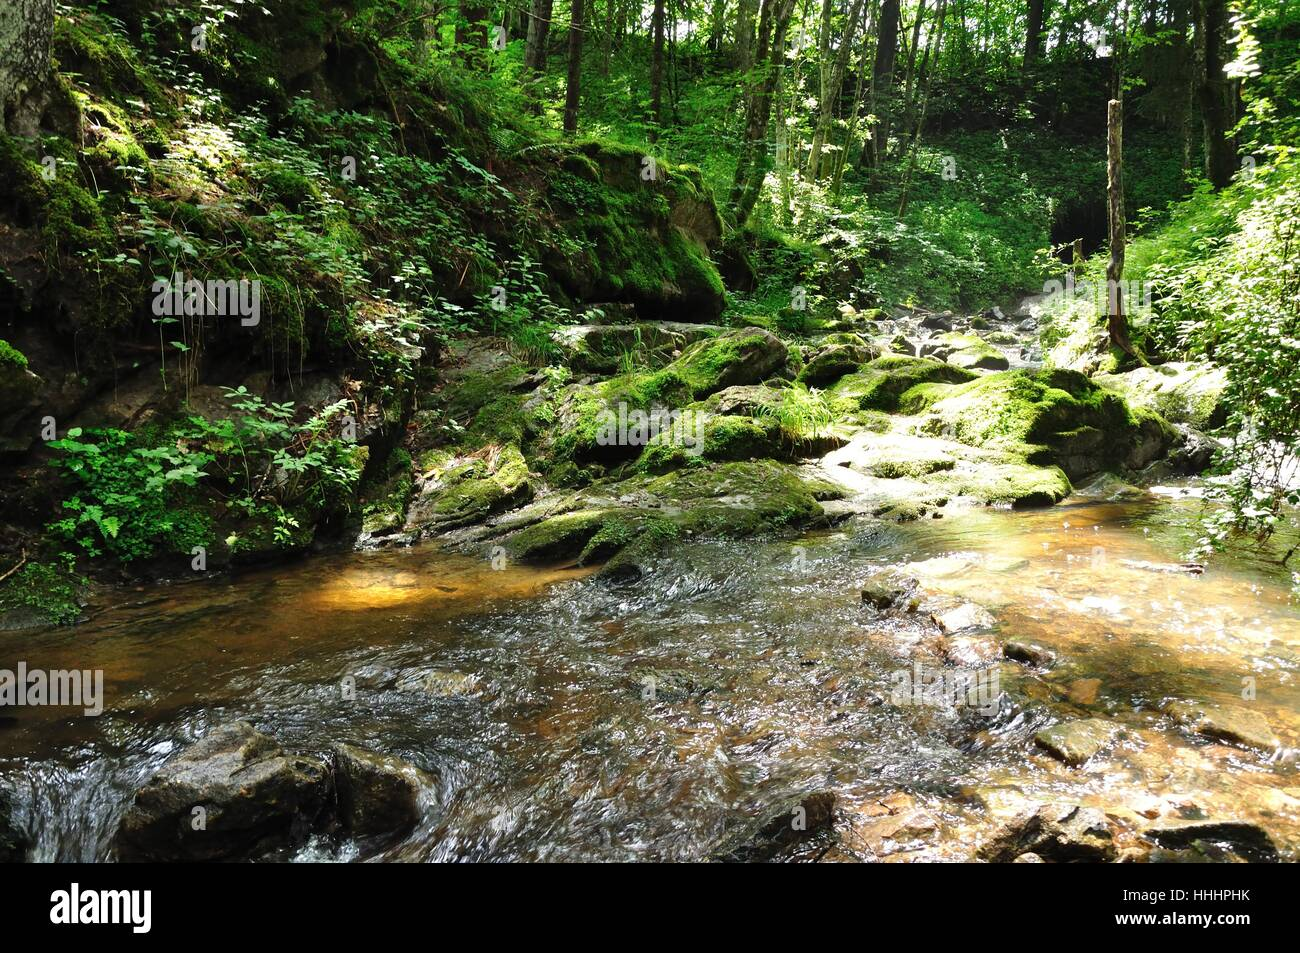 hike, go hiking, ramble, stream, black forest, natural preserve, migrate, - Stock Image